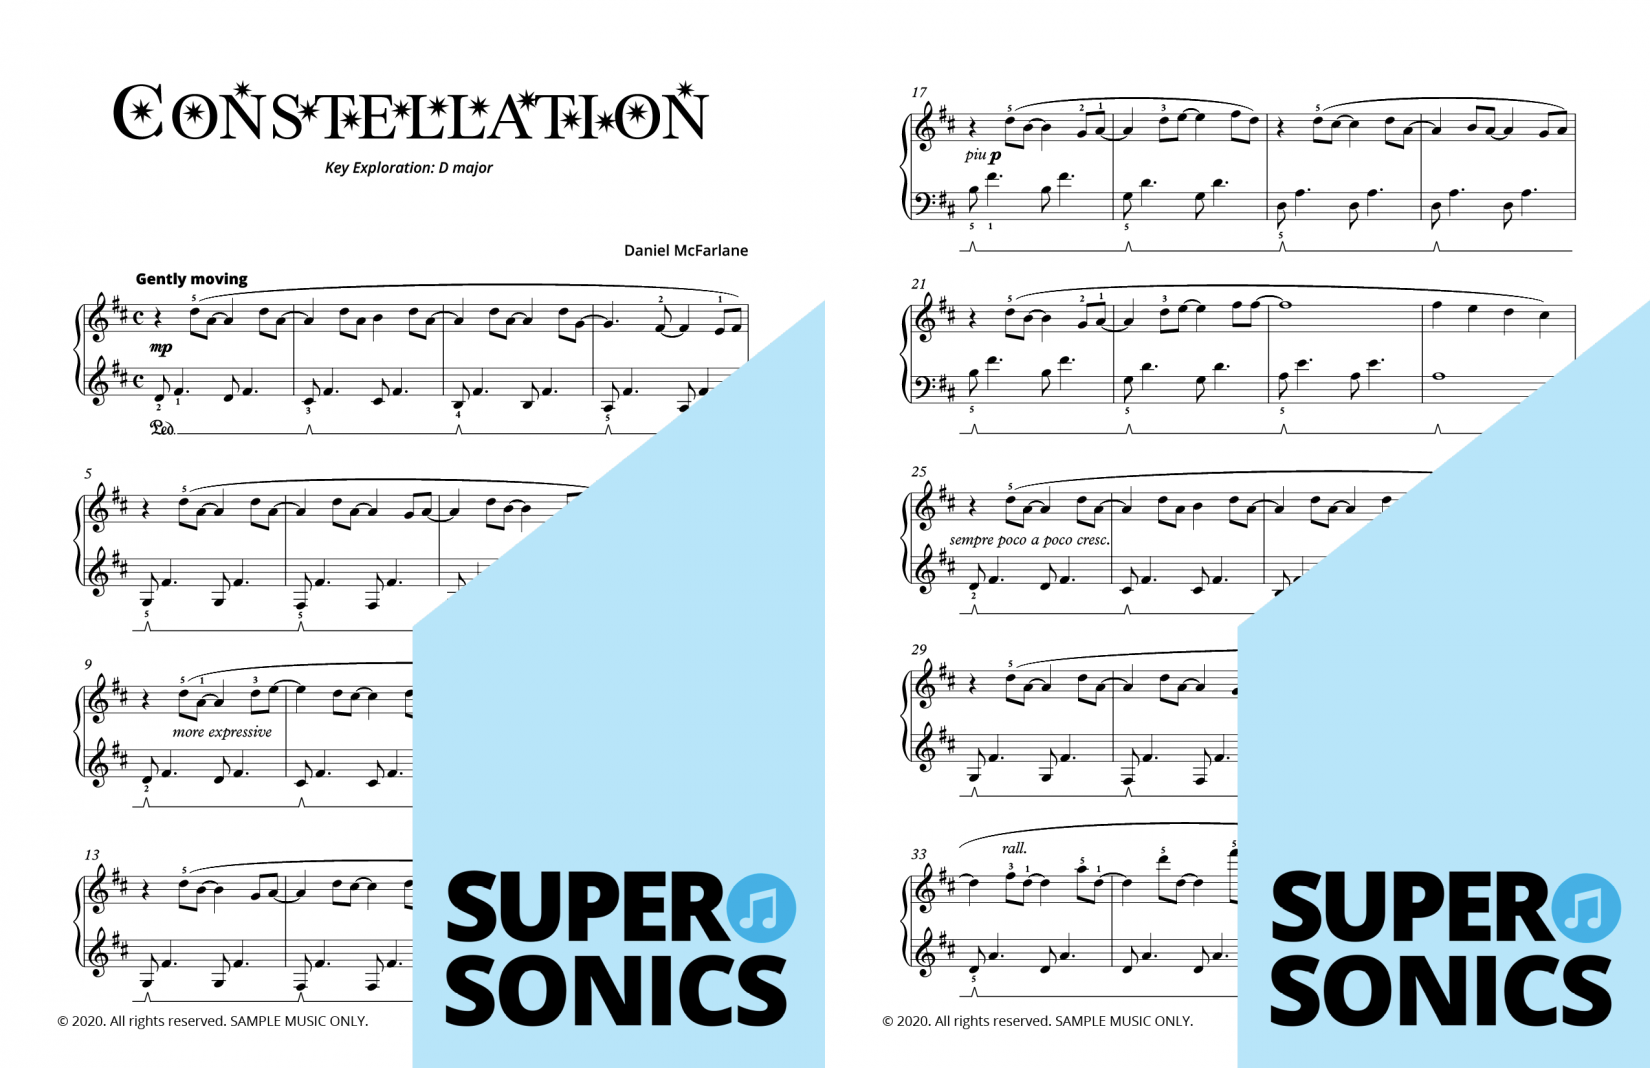 Supersonics Piano Method Level 4 Air Navigators sample